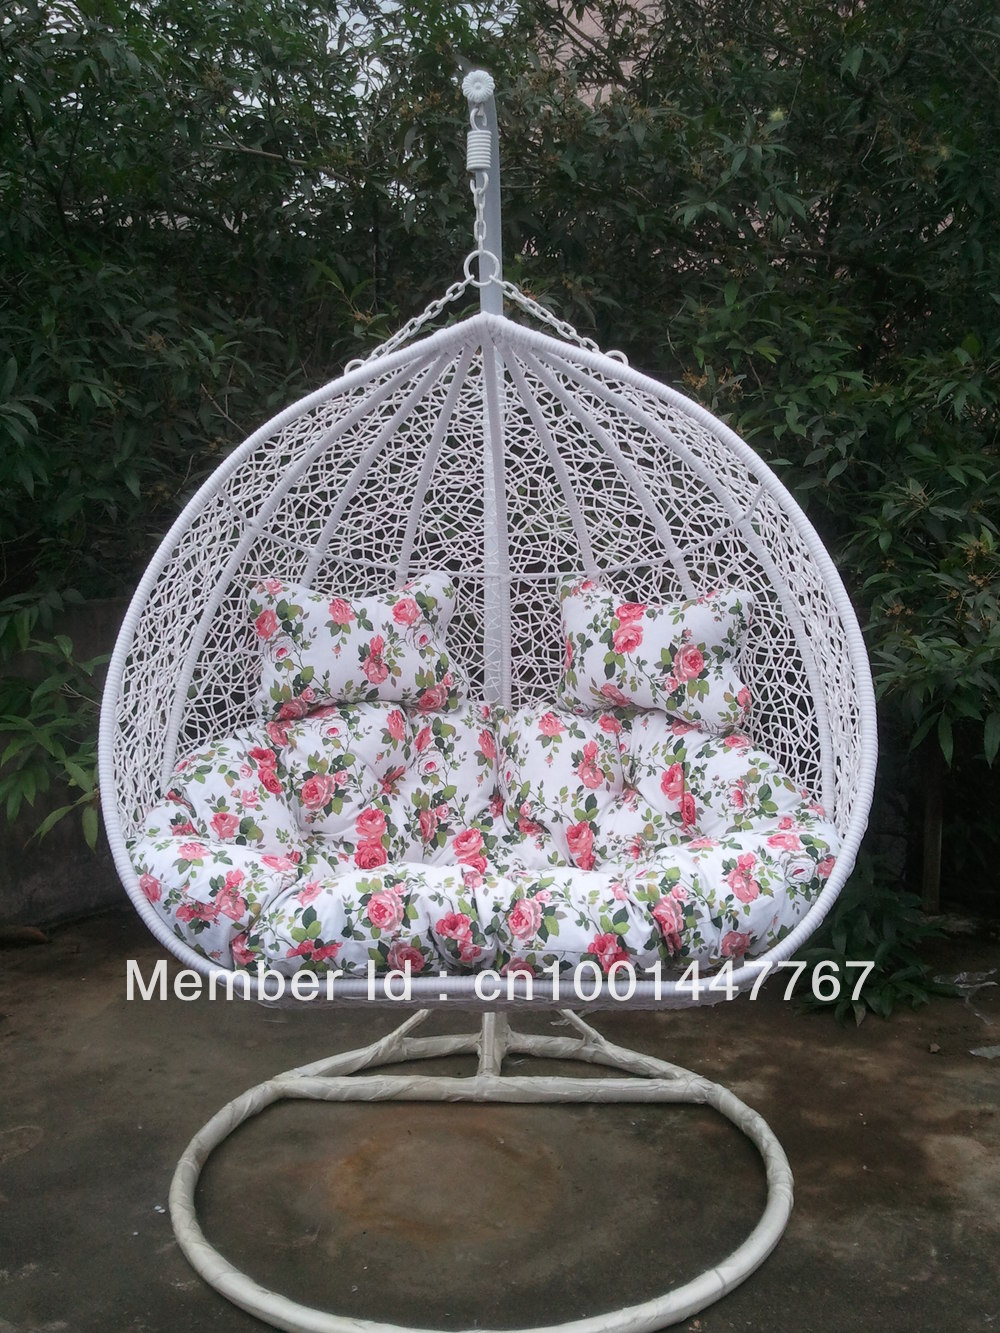 Astonishing Us 115 0 Special Birds Nest Indoor And Outdoor Furniture Pe Rattan Outdoor Double Hanging Basket Basket Hanging Chair In Patio Swings From Alphanode Cool Chair Designs And Ideas Alphanodeonline